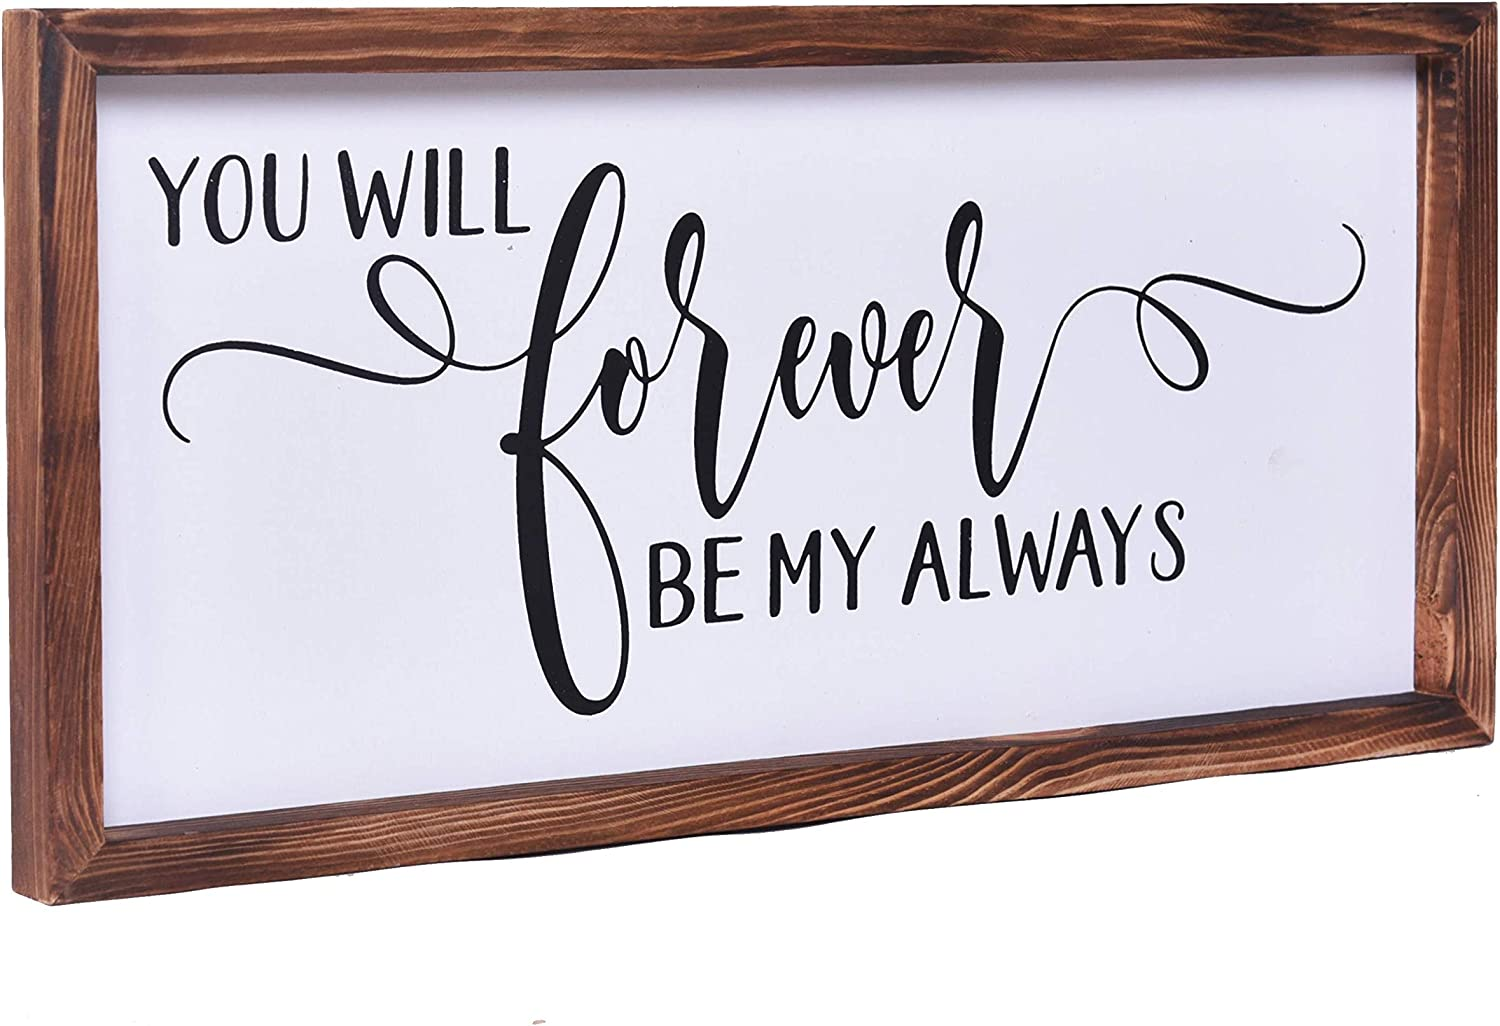 Farmhouse Wall Decor - Modern Rustic Wall Art Home Decor - You Will Forever Be My Always - Cute Solid Wood Framed Printed Sign for Living Room and Bedroom Decoration - Approx. 8x17 Inches